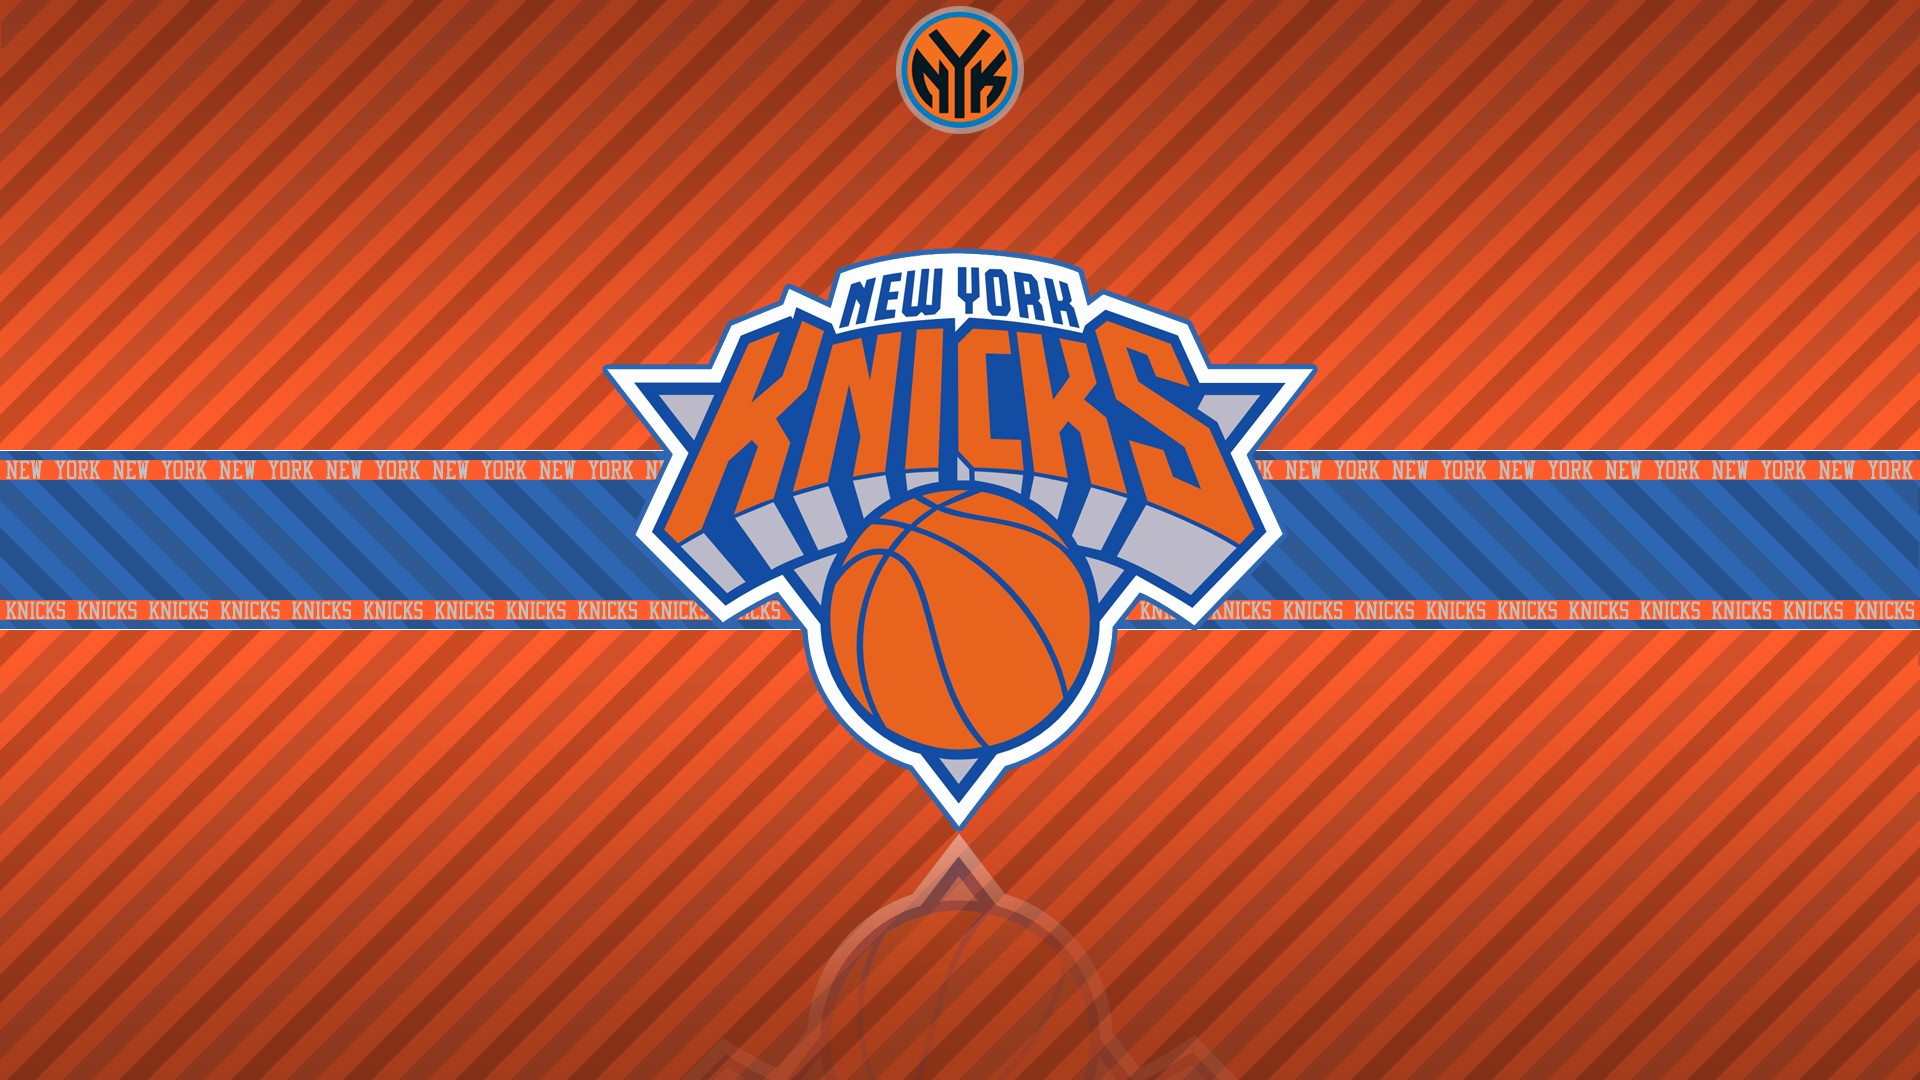 1920x1080 - New York Knicks Wallpapers 2